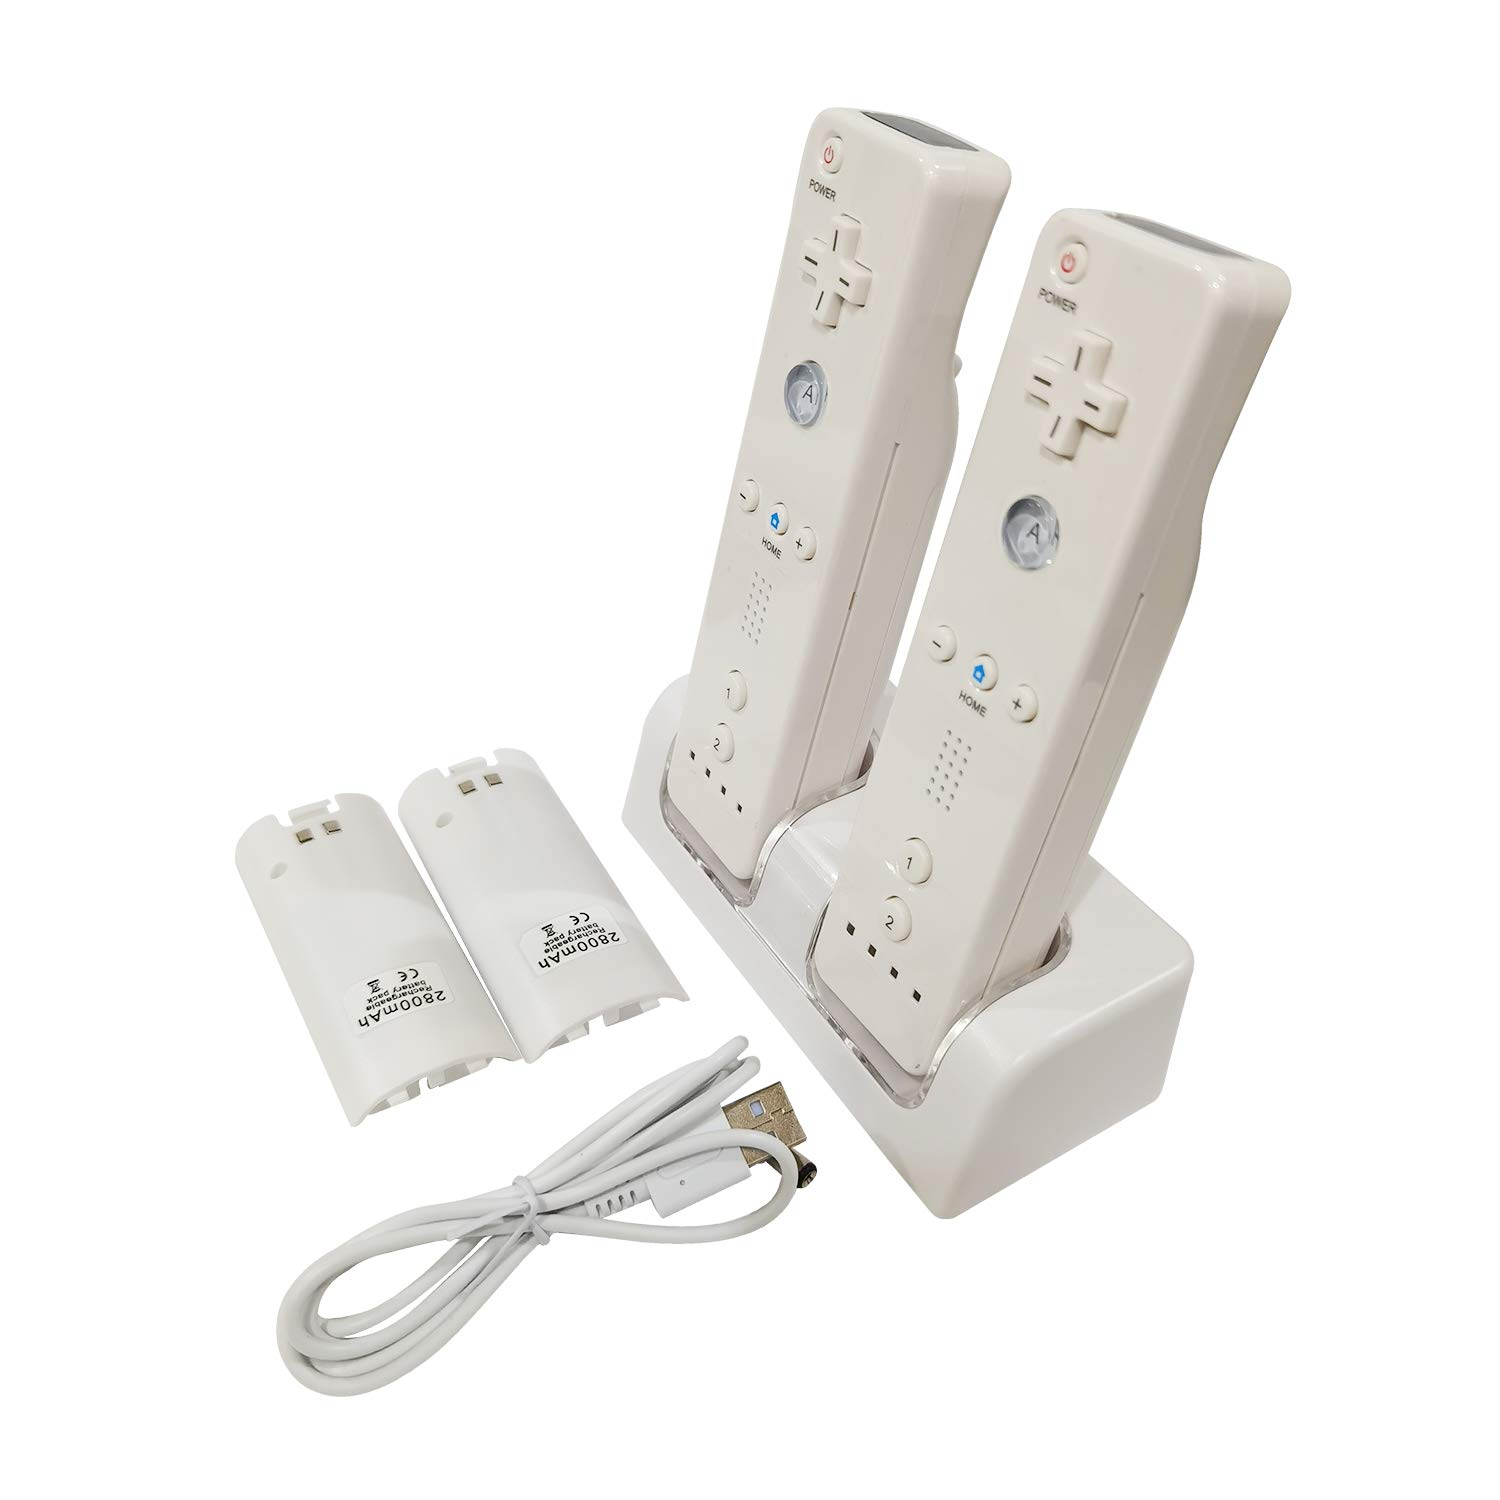 Prodico Wii Charging Station Charge Dock with Two Rechargeable Batteries for Wii Controller: Video Games